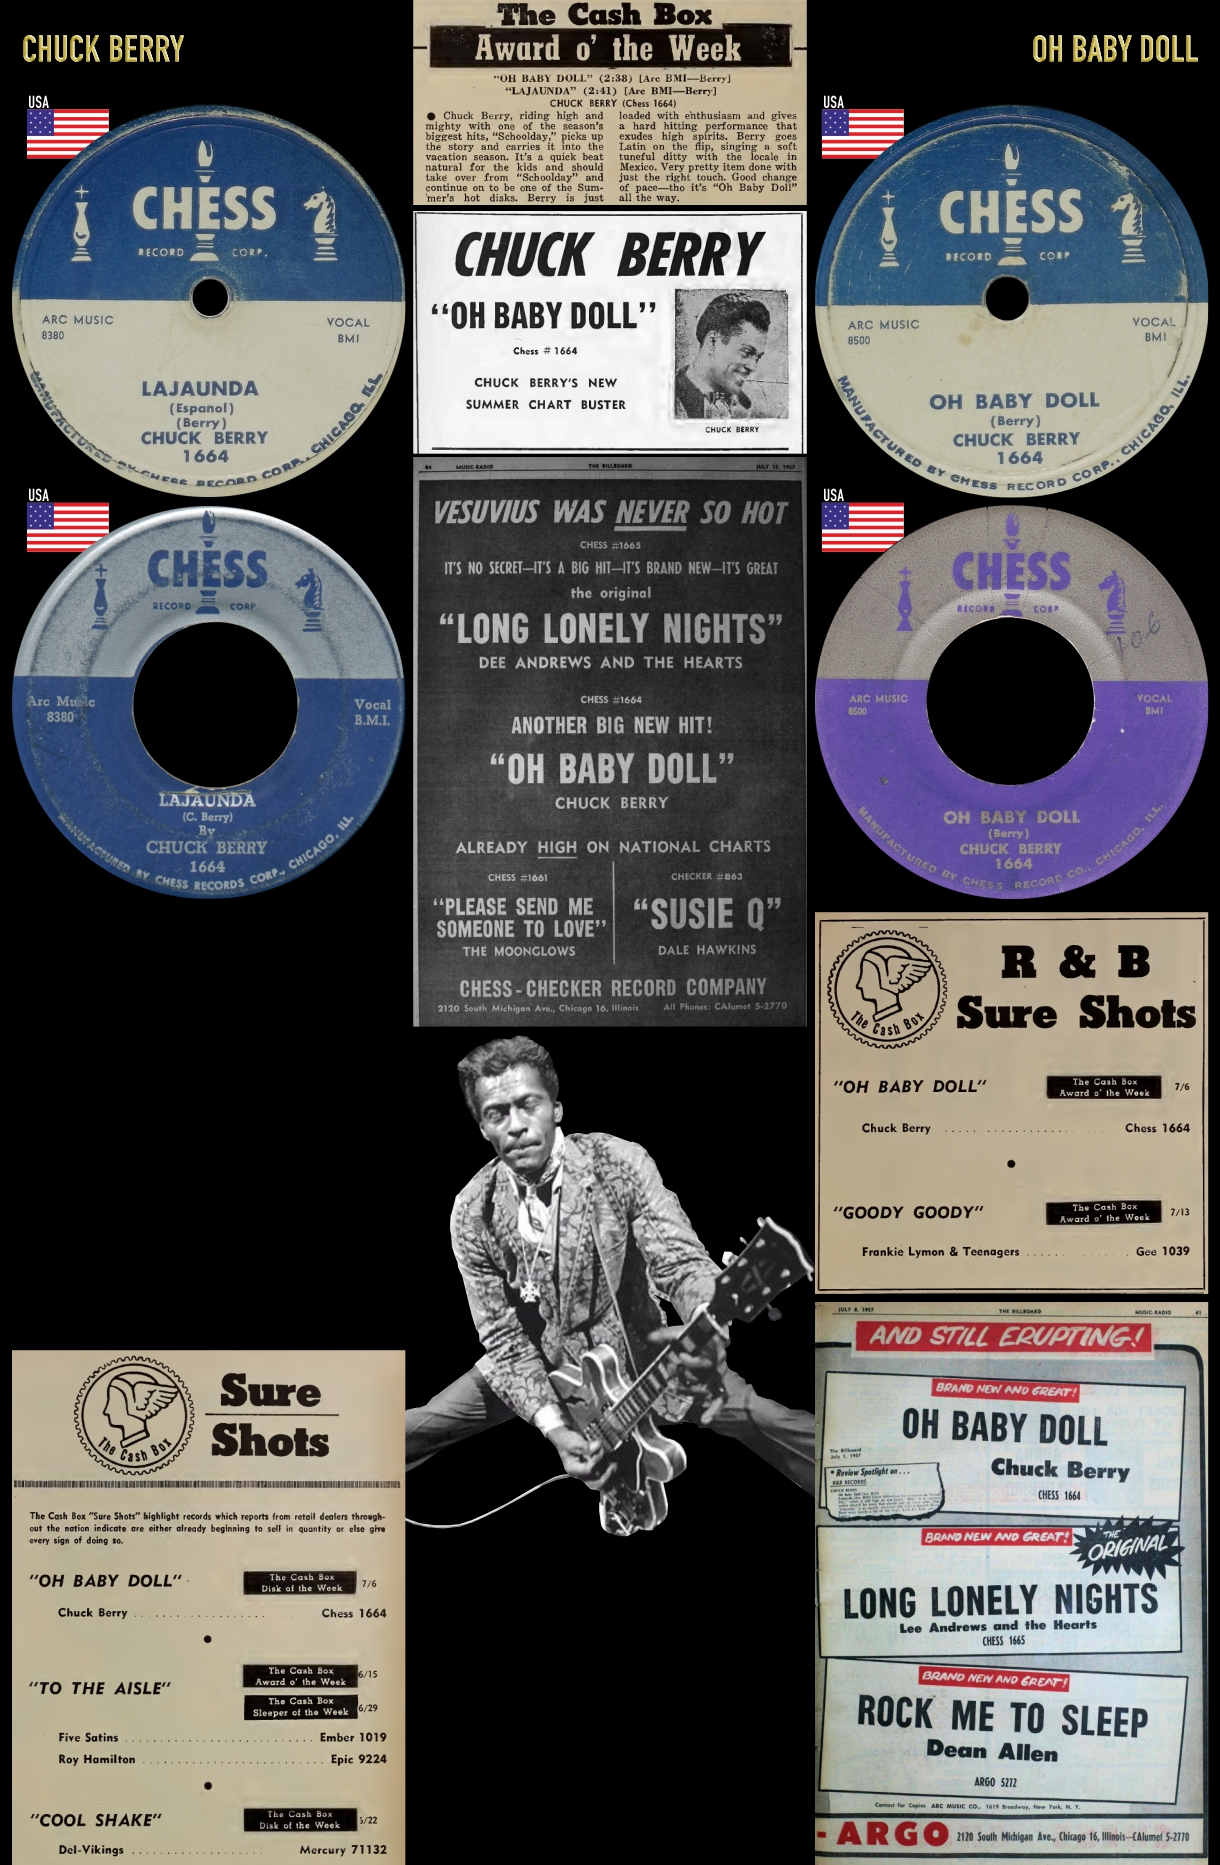 570727_Chuck Berry_Oh Baby Doll_Lajaunda